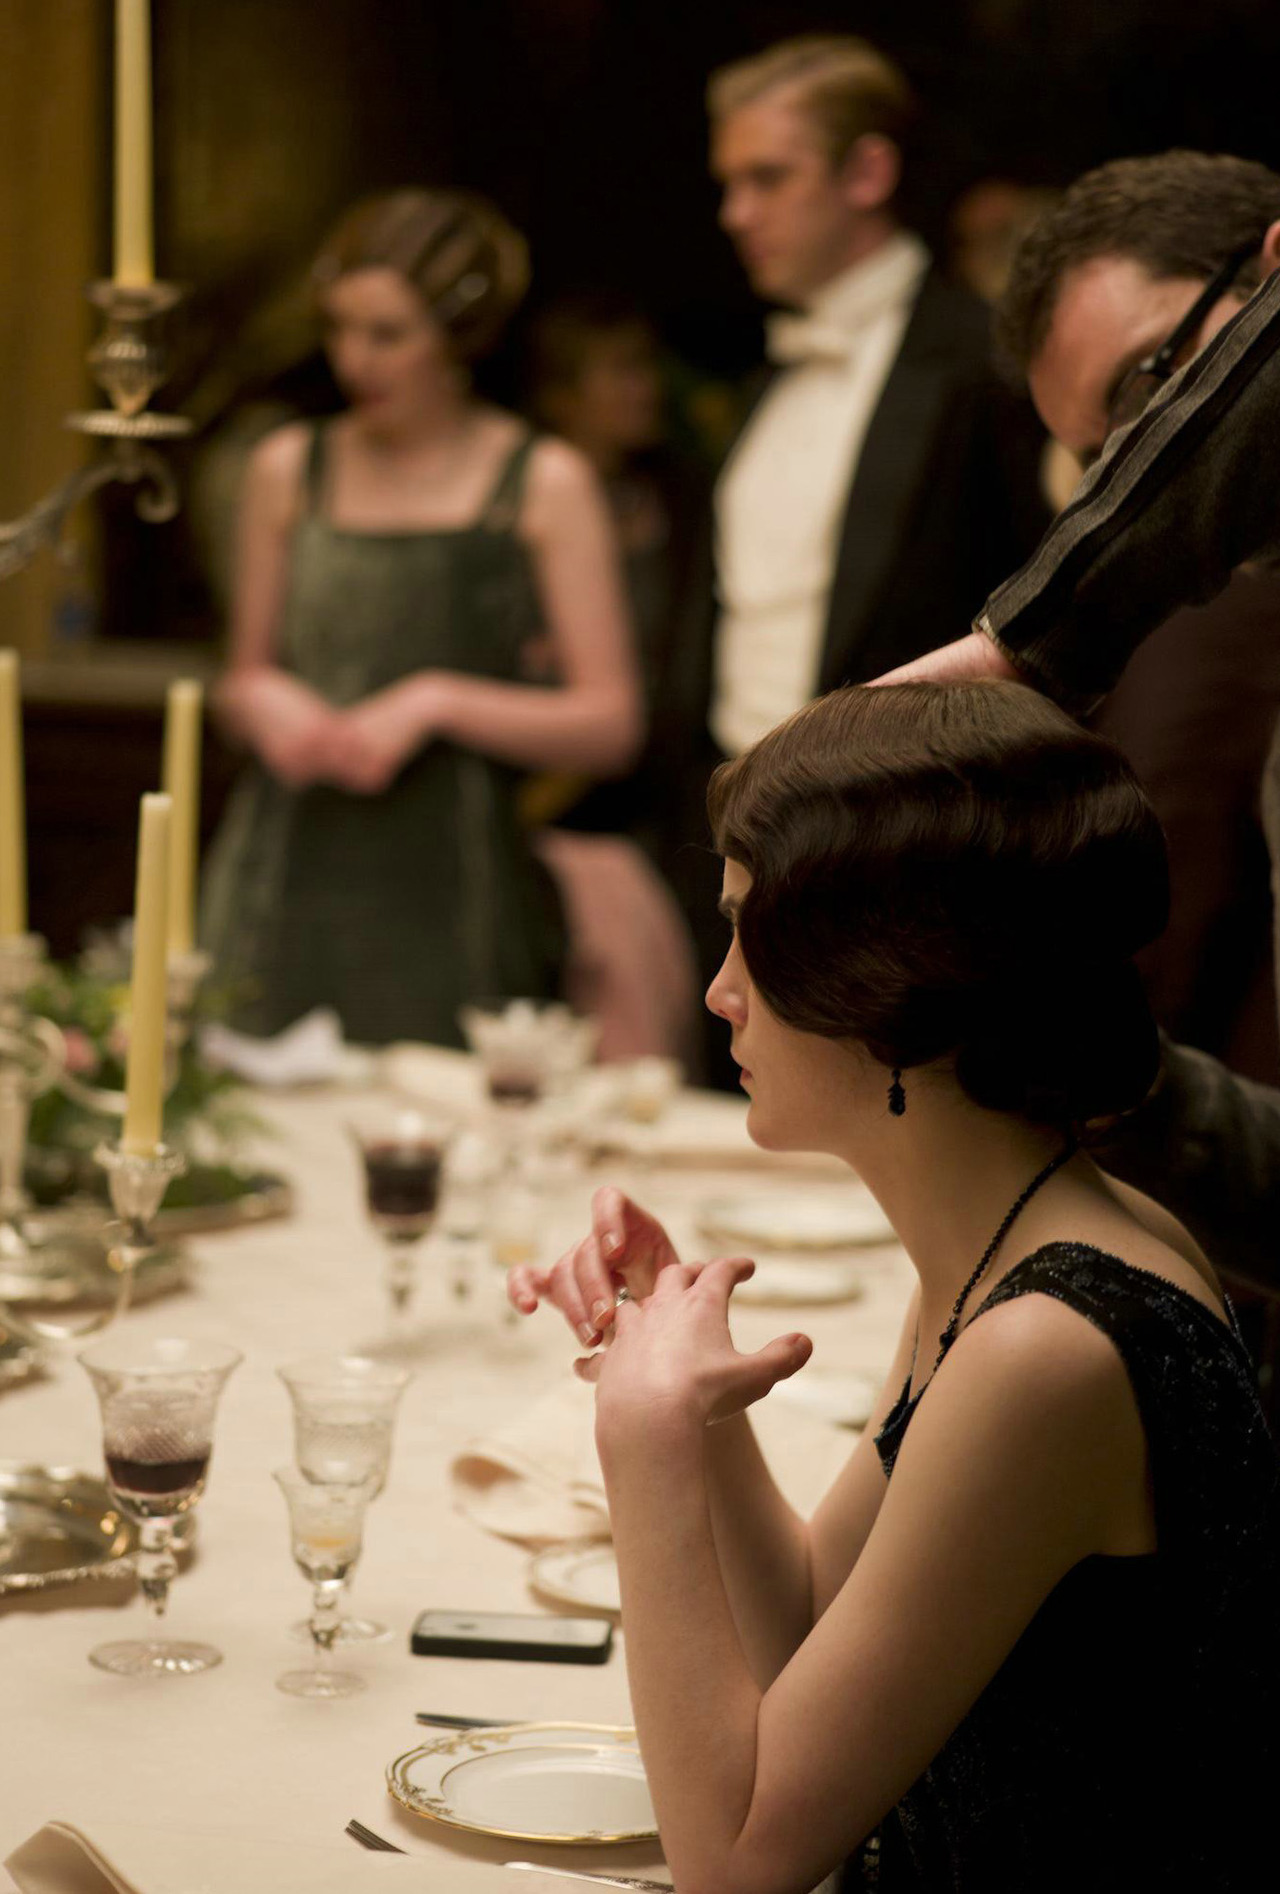 On the set of Downton Abbey season three